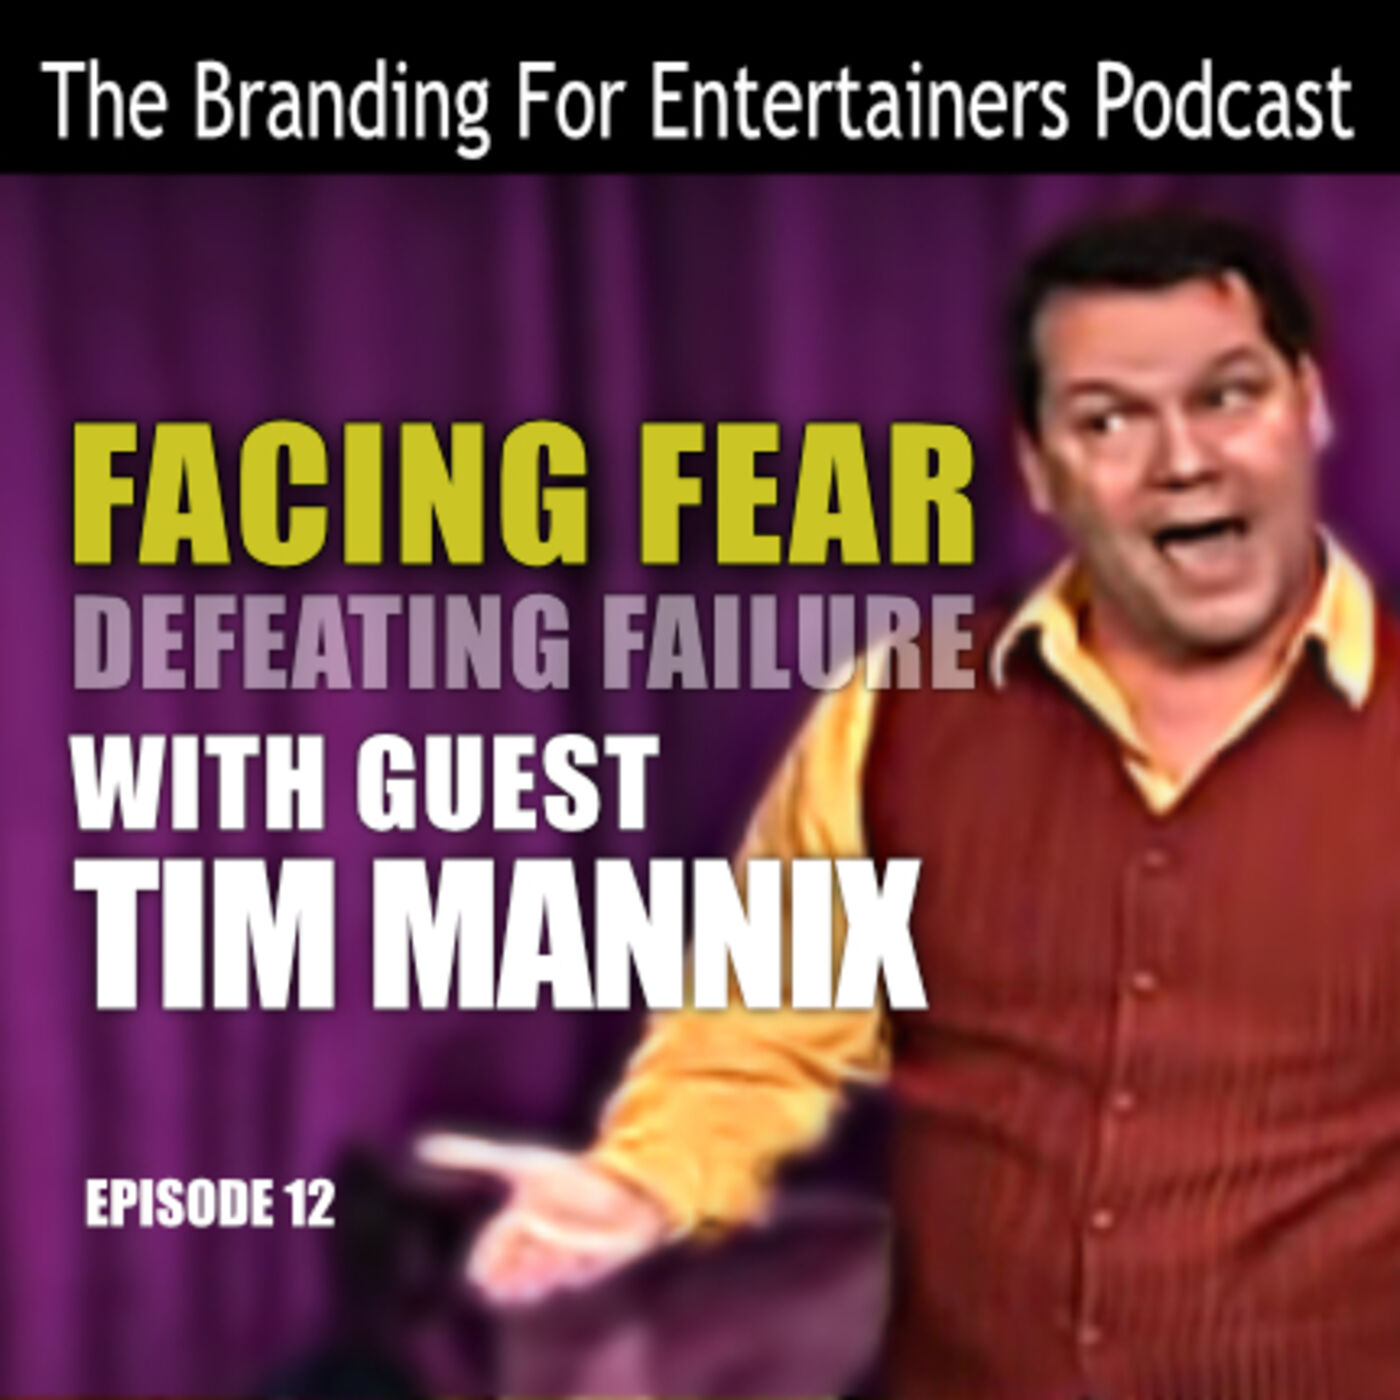 BFE EP12: Facing Fear with Tim Mannix